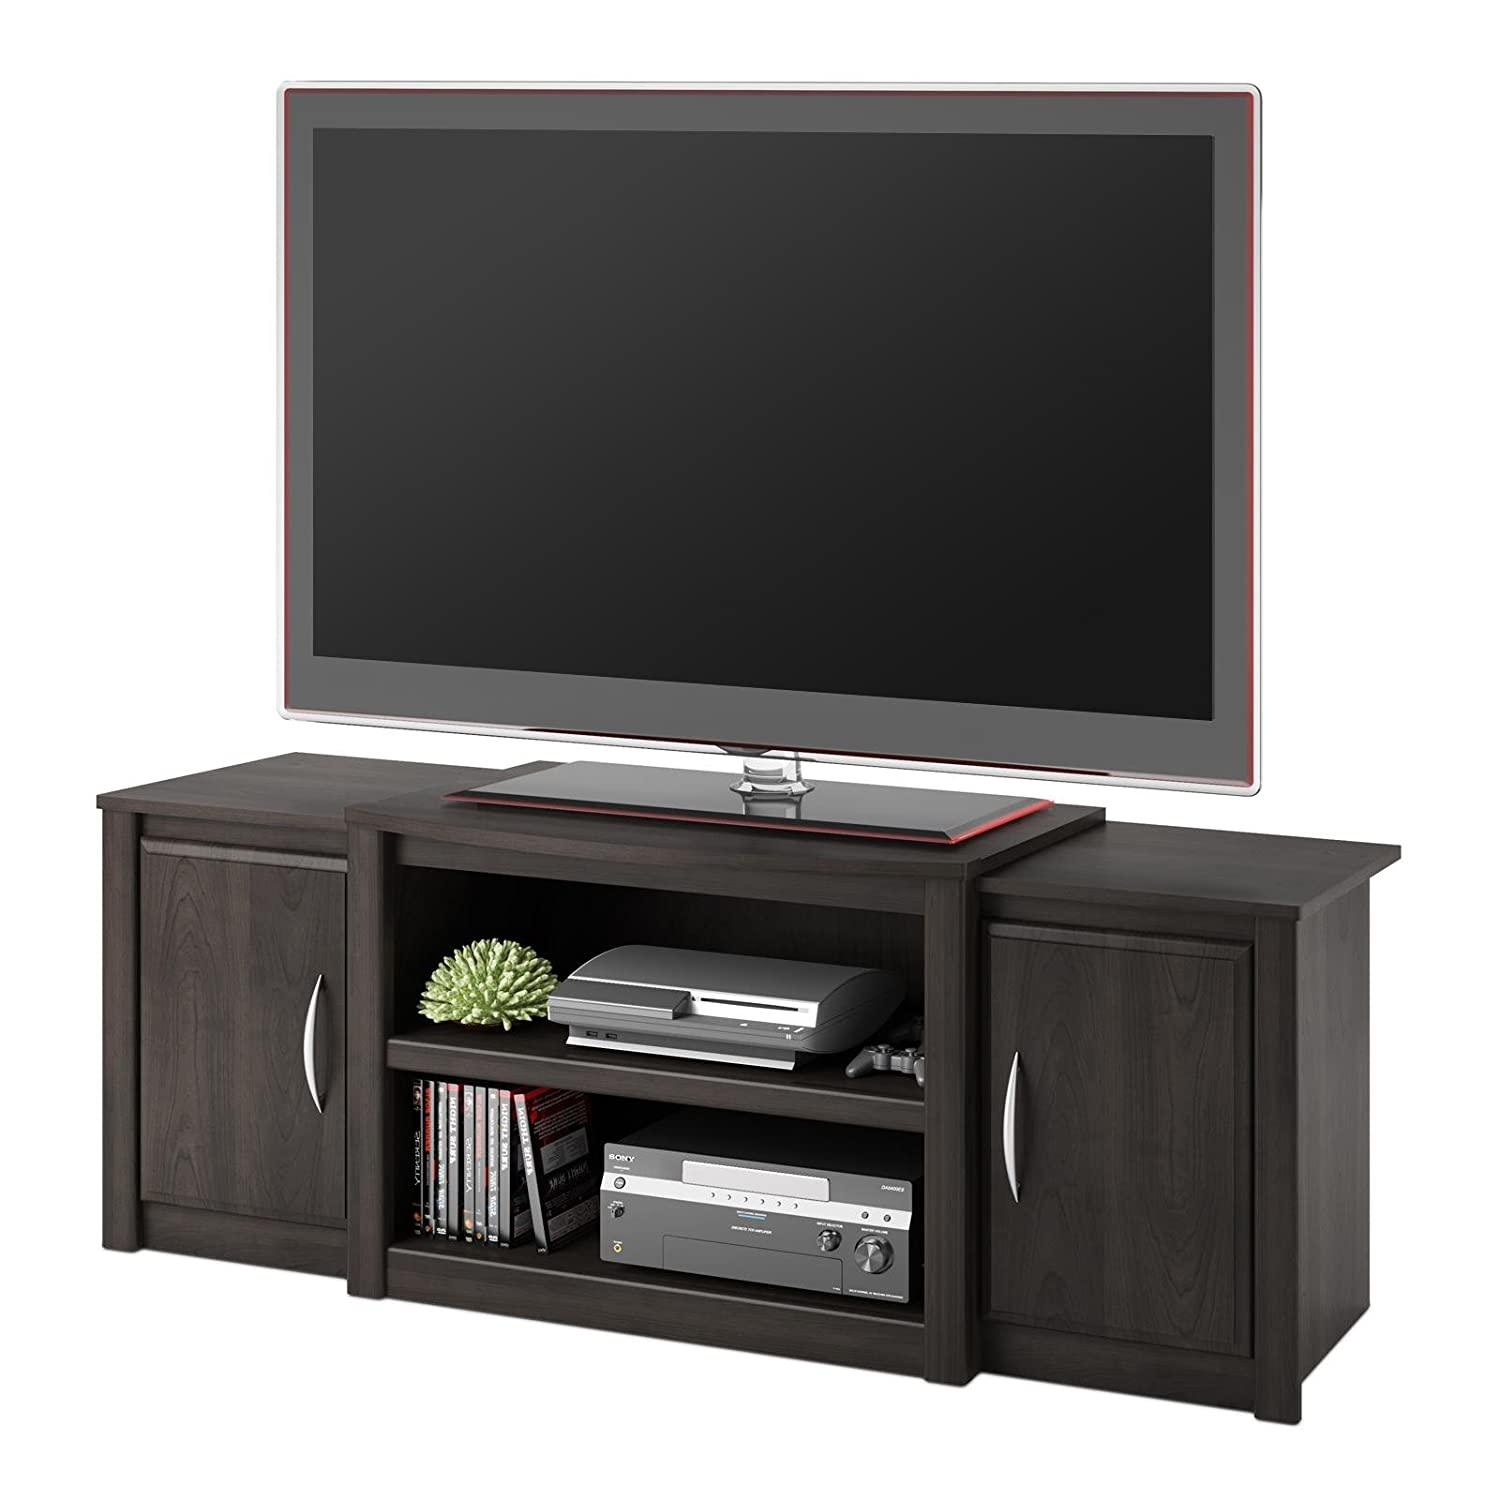 Preferred Amazon.com: Ameriwood Home Cohen TV Stand with Media Storage for  CI55